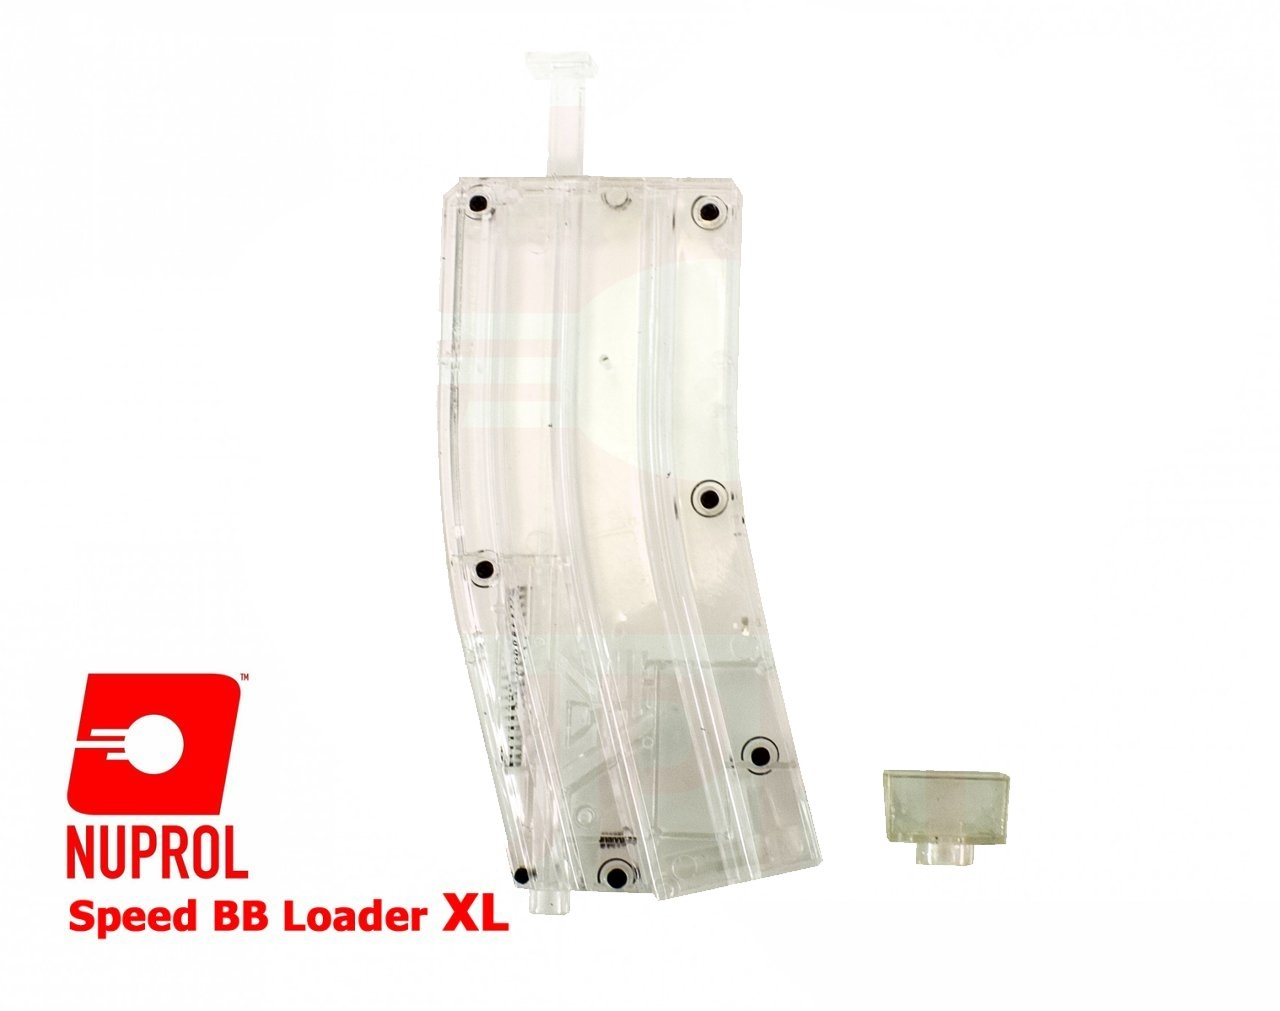 WE NUPROL ŞEFFAF AIRSOFT BB LOADER XL 470BB